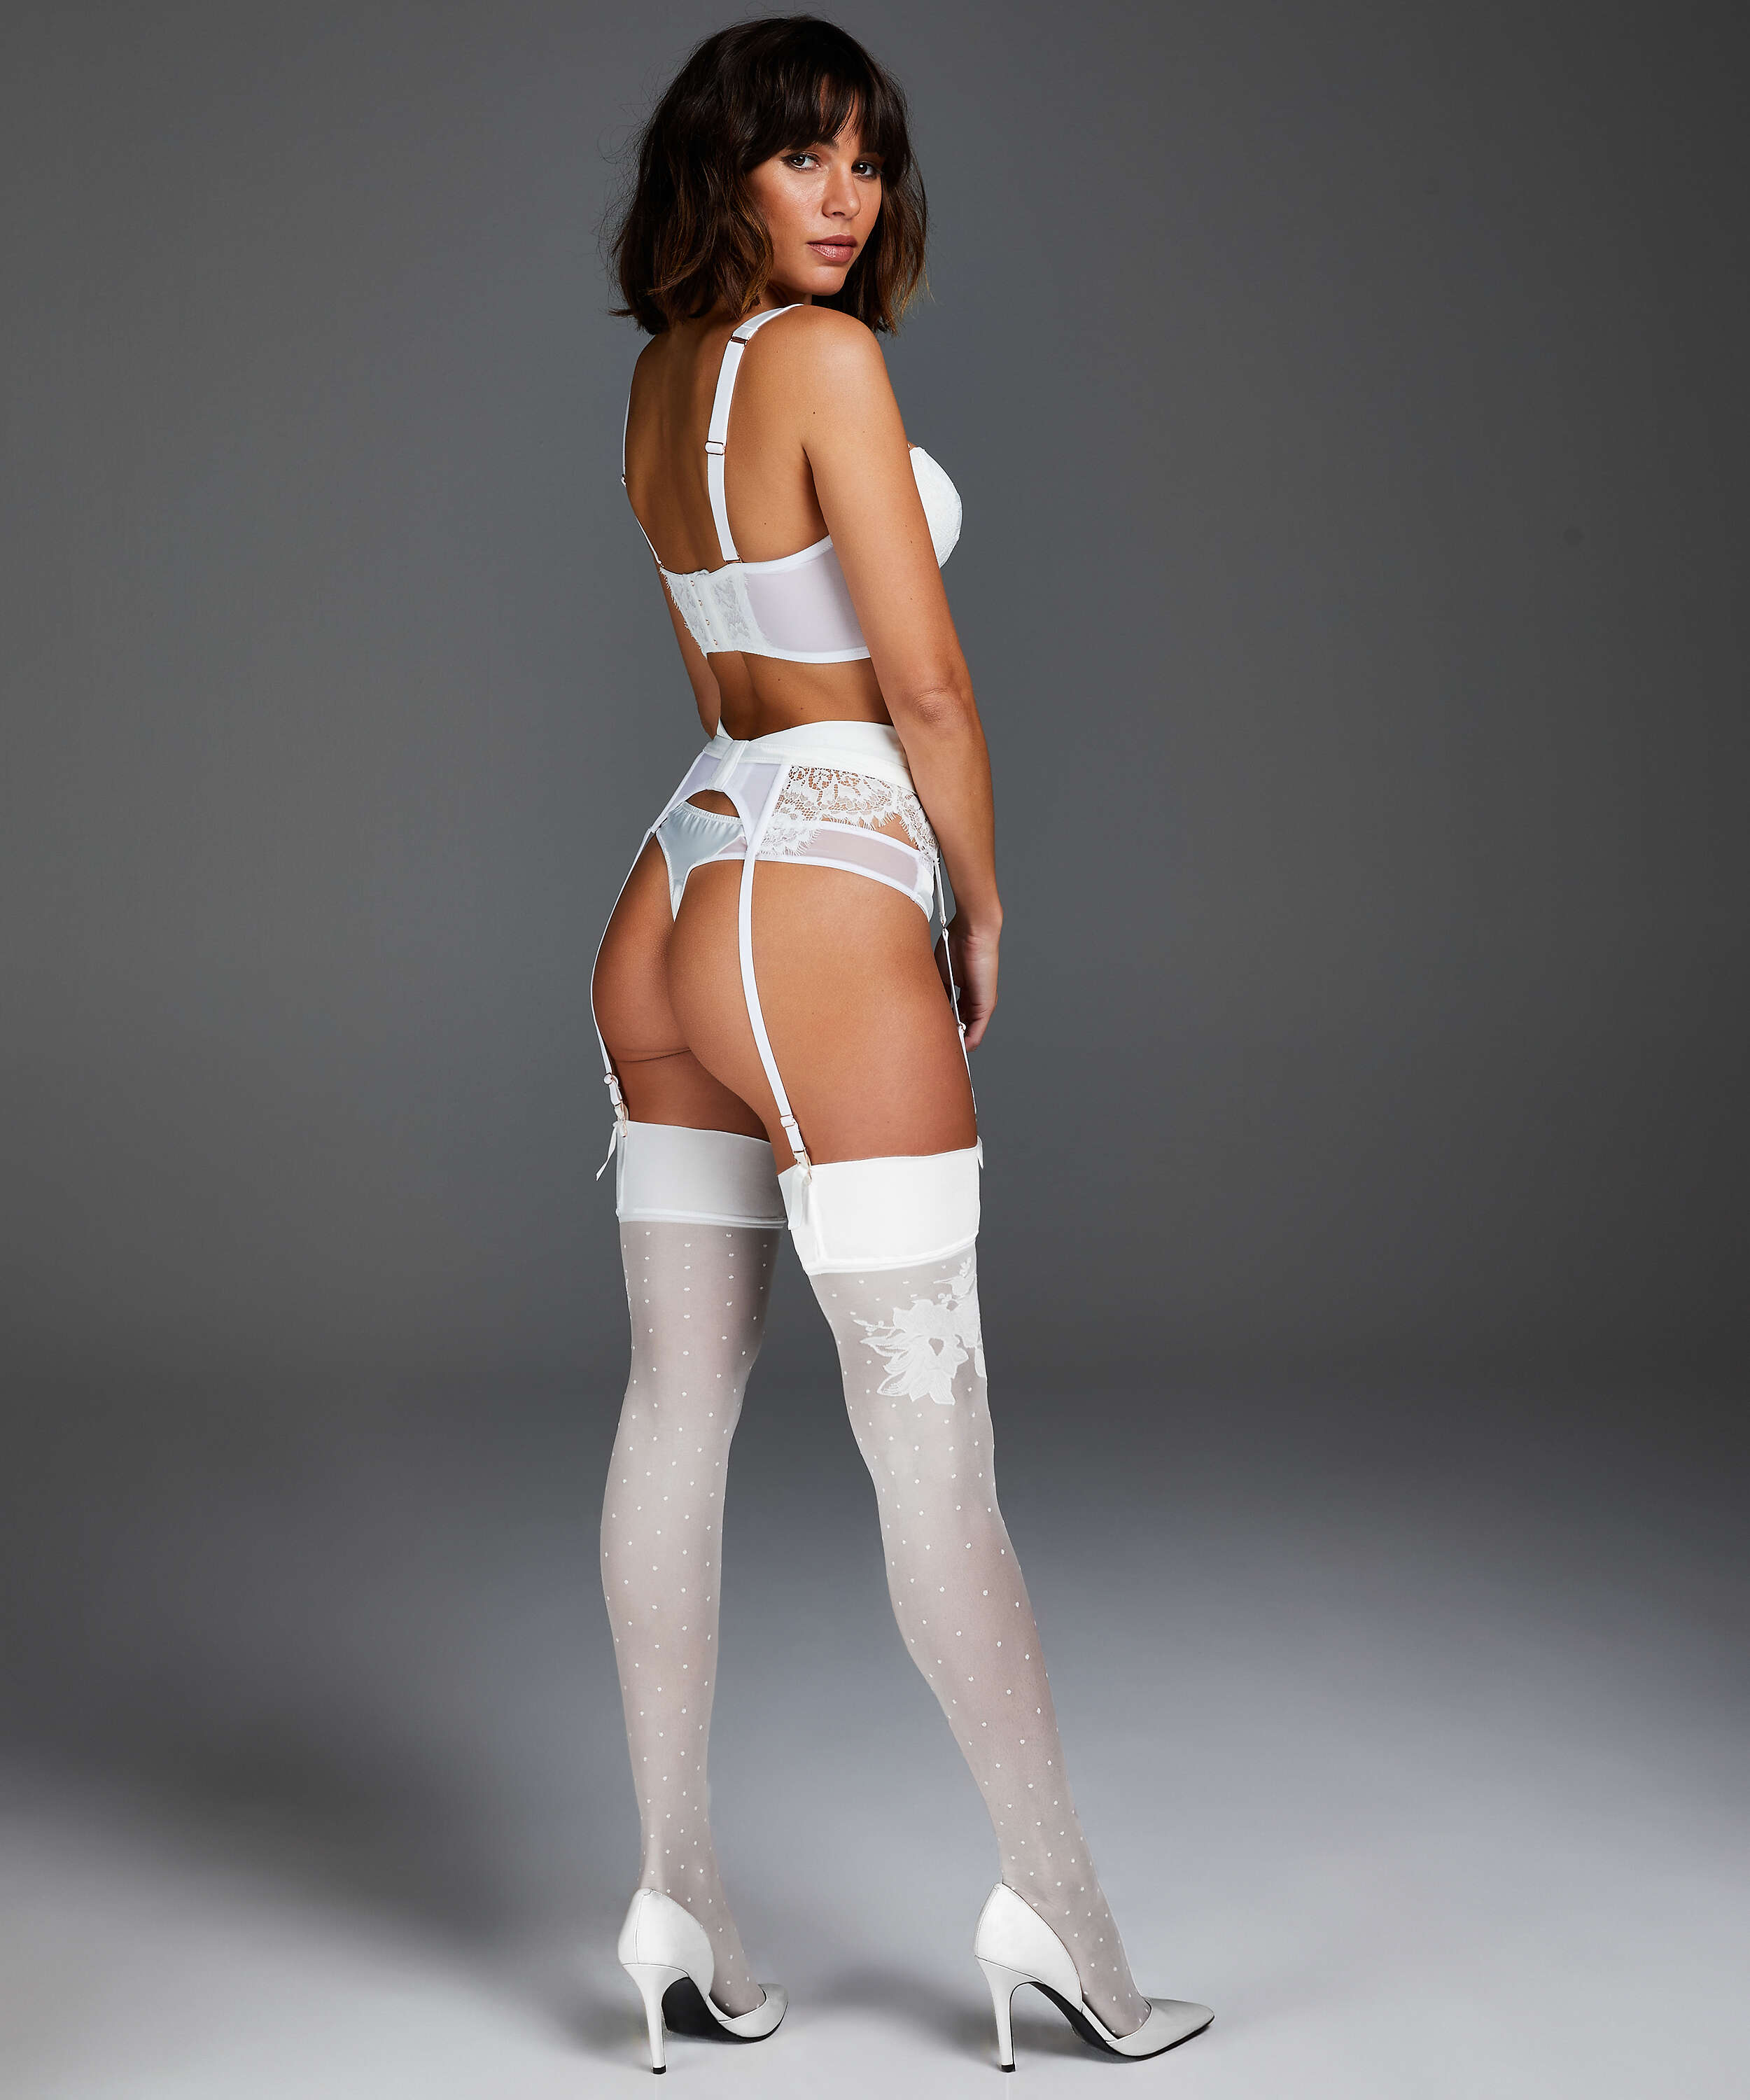 Noir Stockings 15 Denier Amelia Anti Ladder, White, main